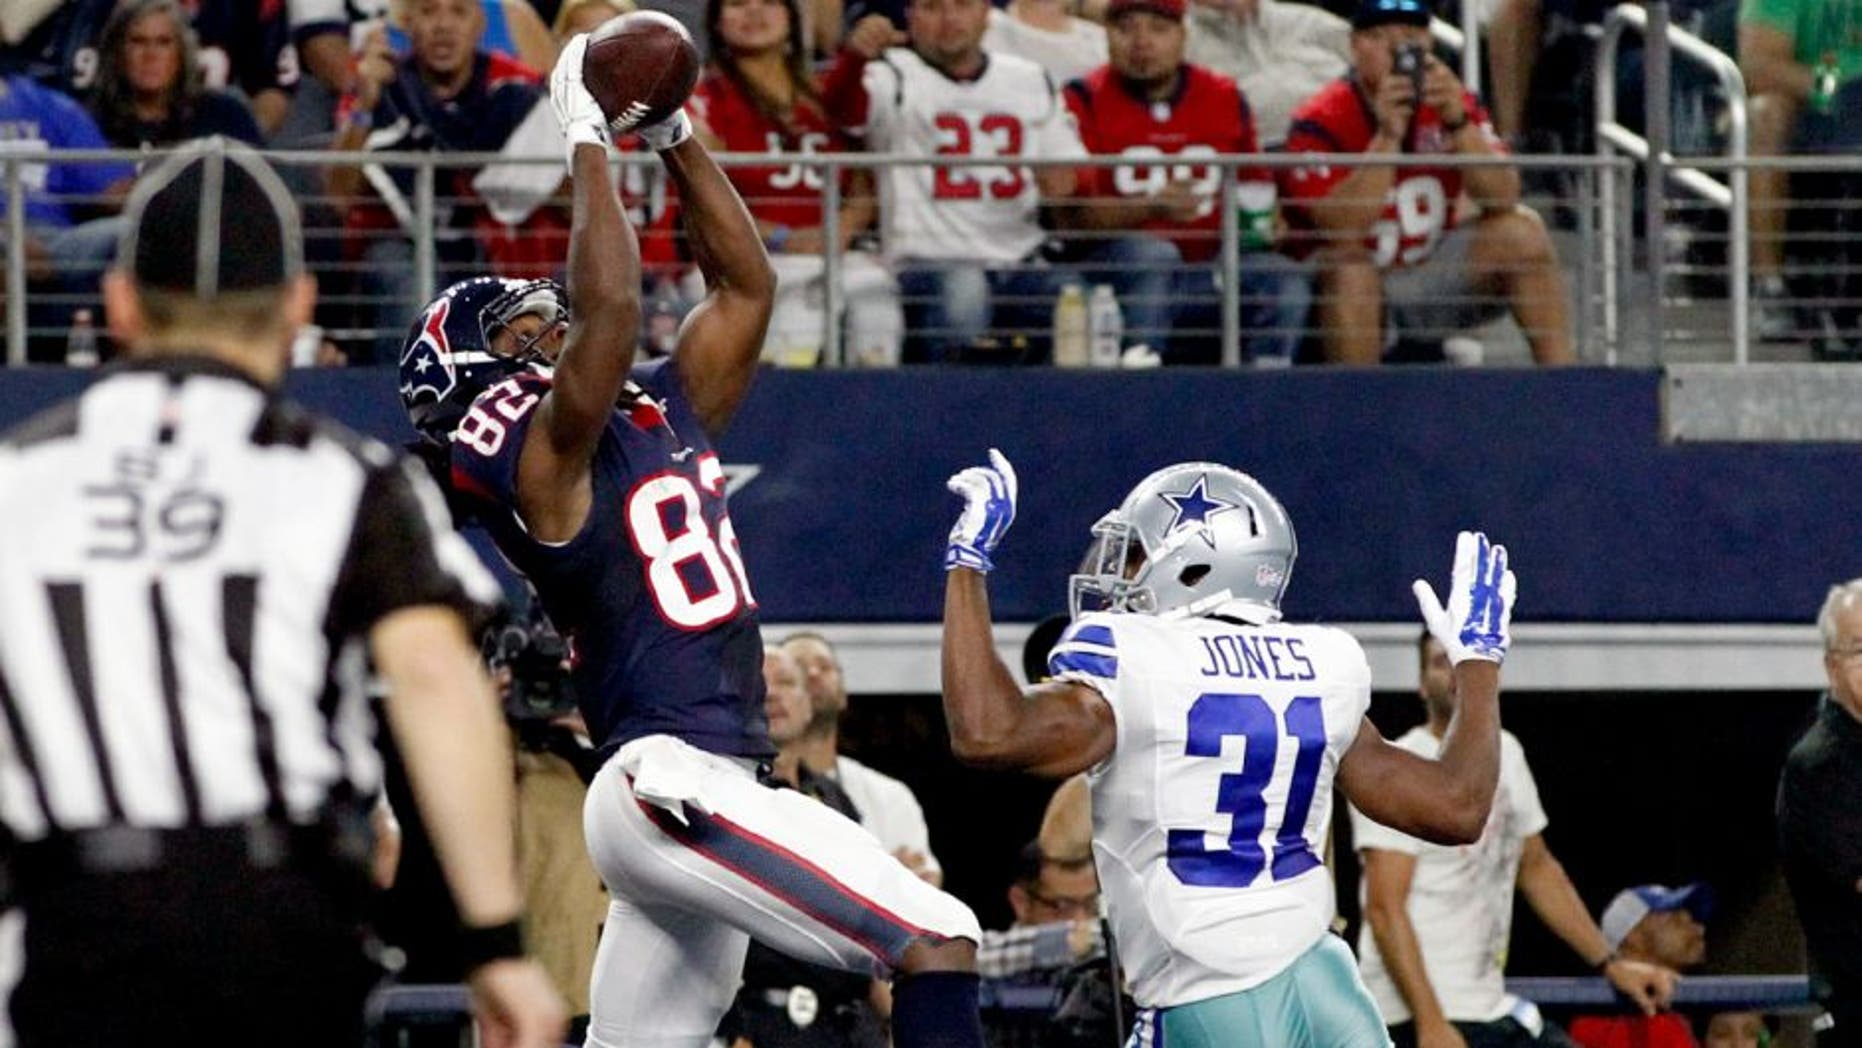 Sep 3, 2015; Arlington, TX, USA; Houston Texans wide receiver Keshawn Martin (82) catches a touchdown pass in the fourth quarter against Dallas Cowboys cornerback Byron Jones (31) at AT&T Stadium. Dallas won 21-14. Mandatory Credit: Tim Heitman-USA TODAY Sports